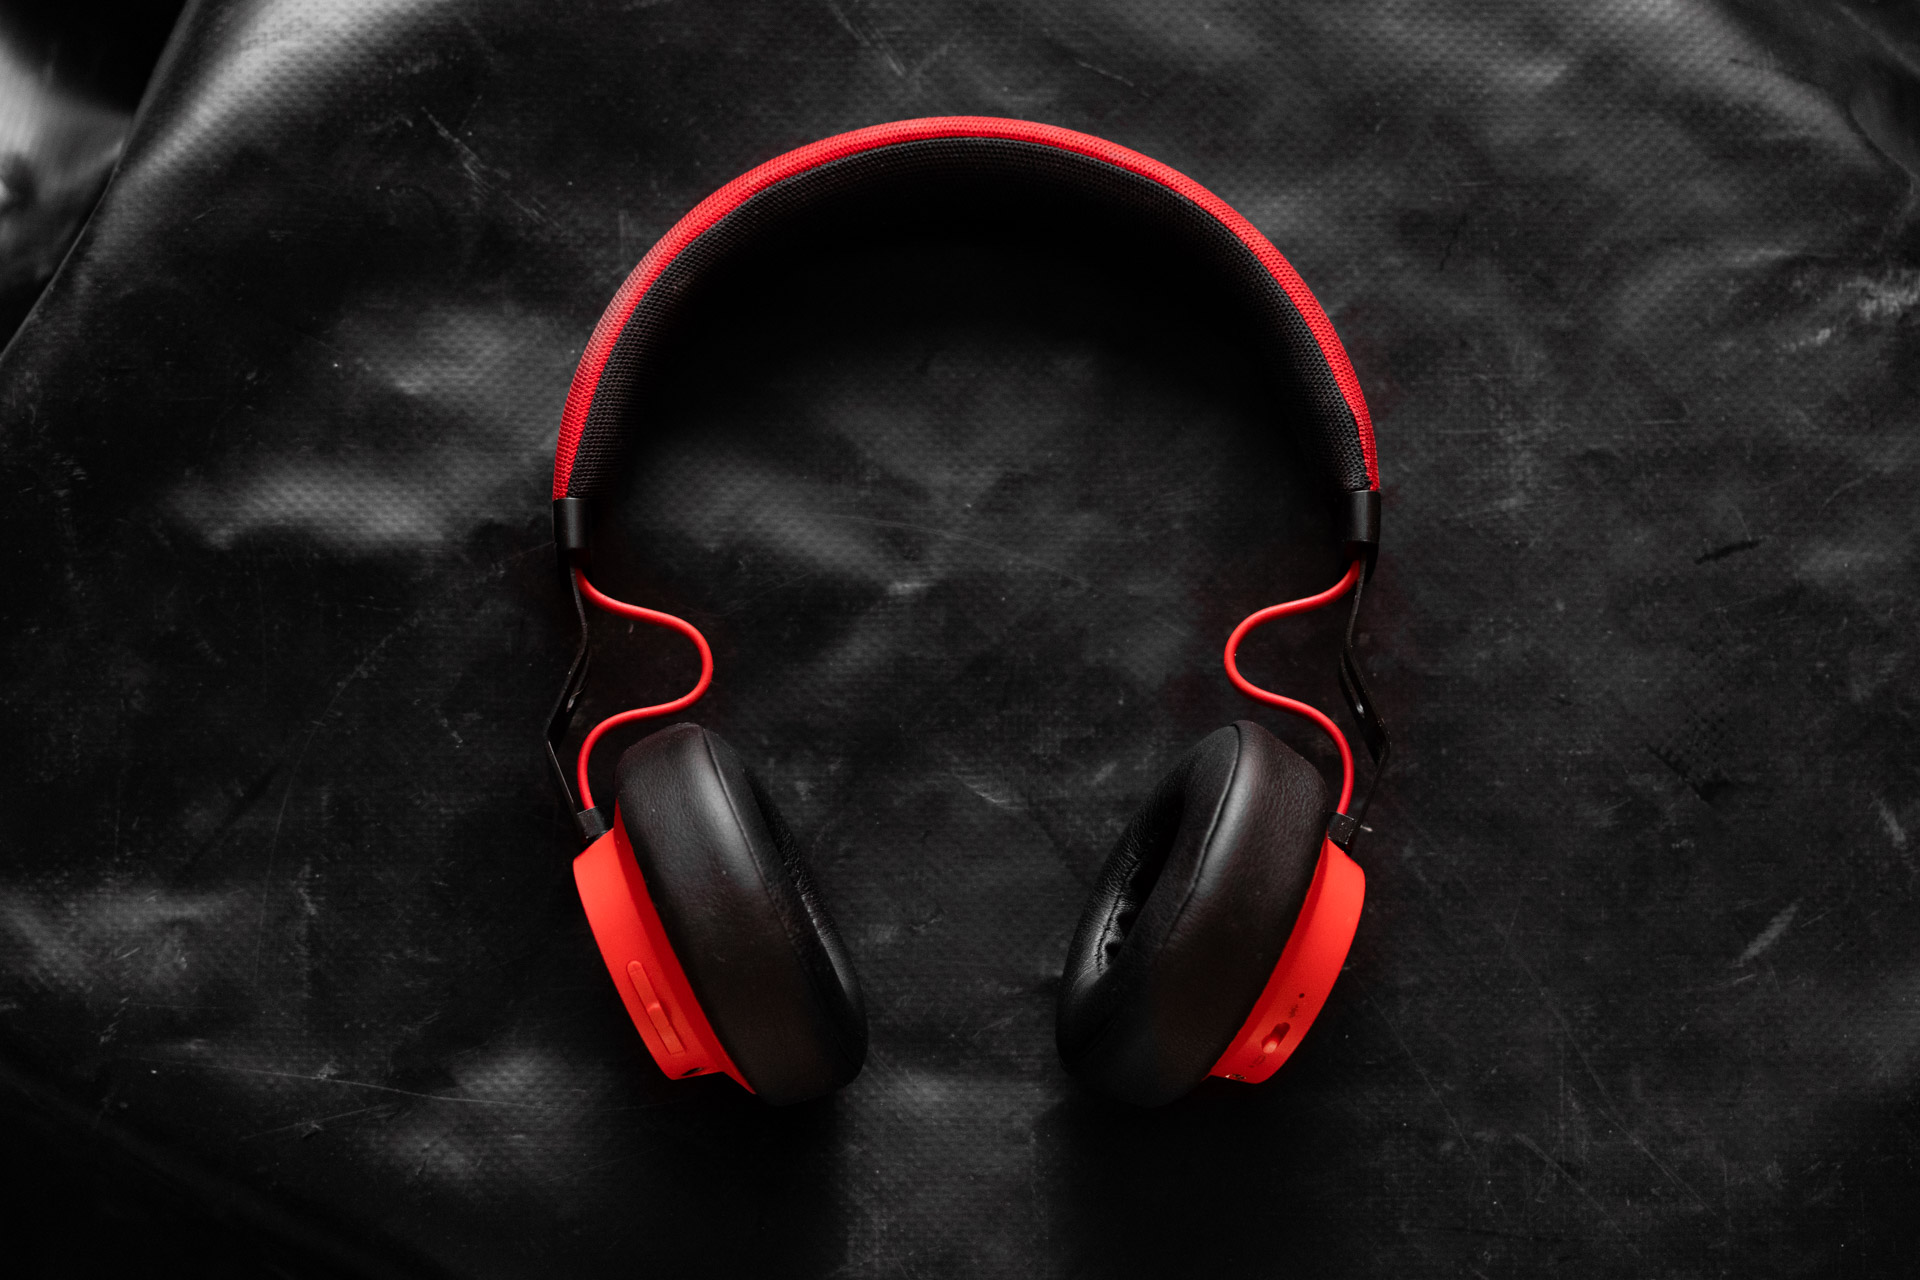 BPP 05 - Headphones IG-10.jpg